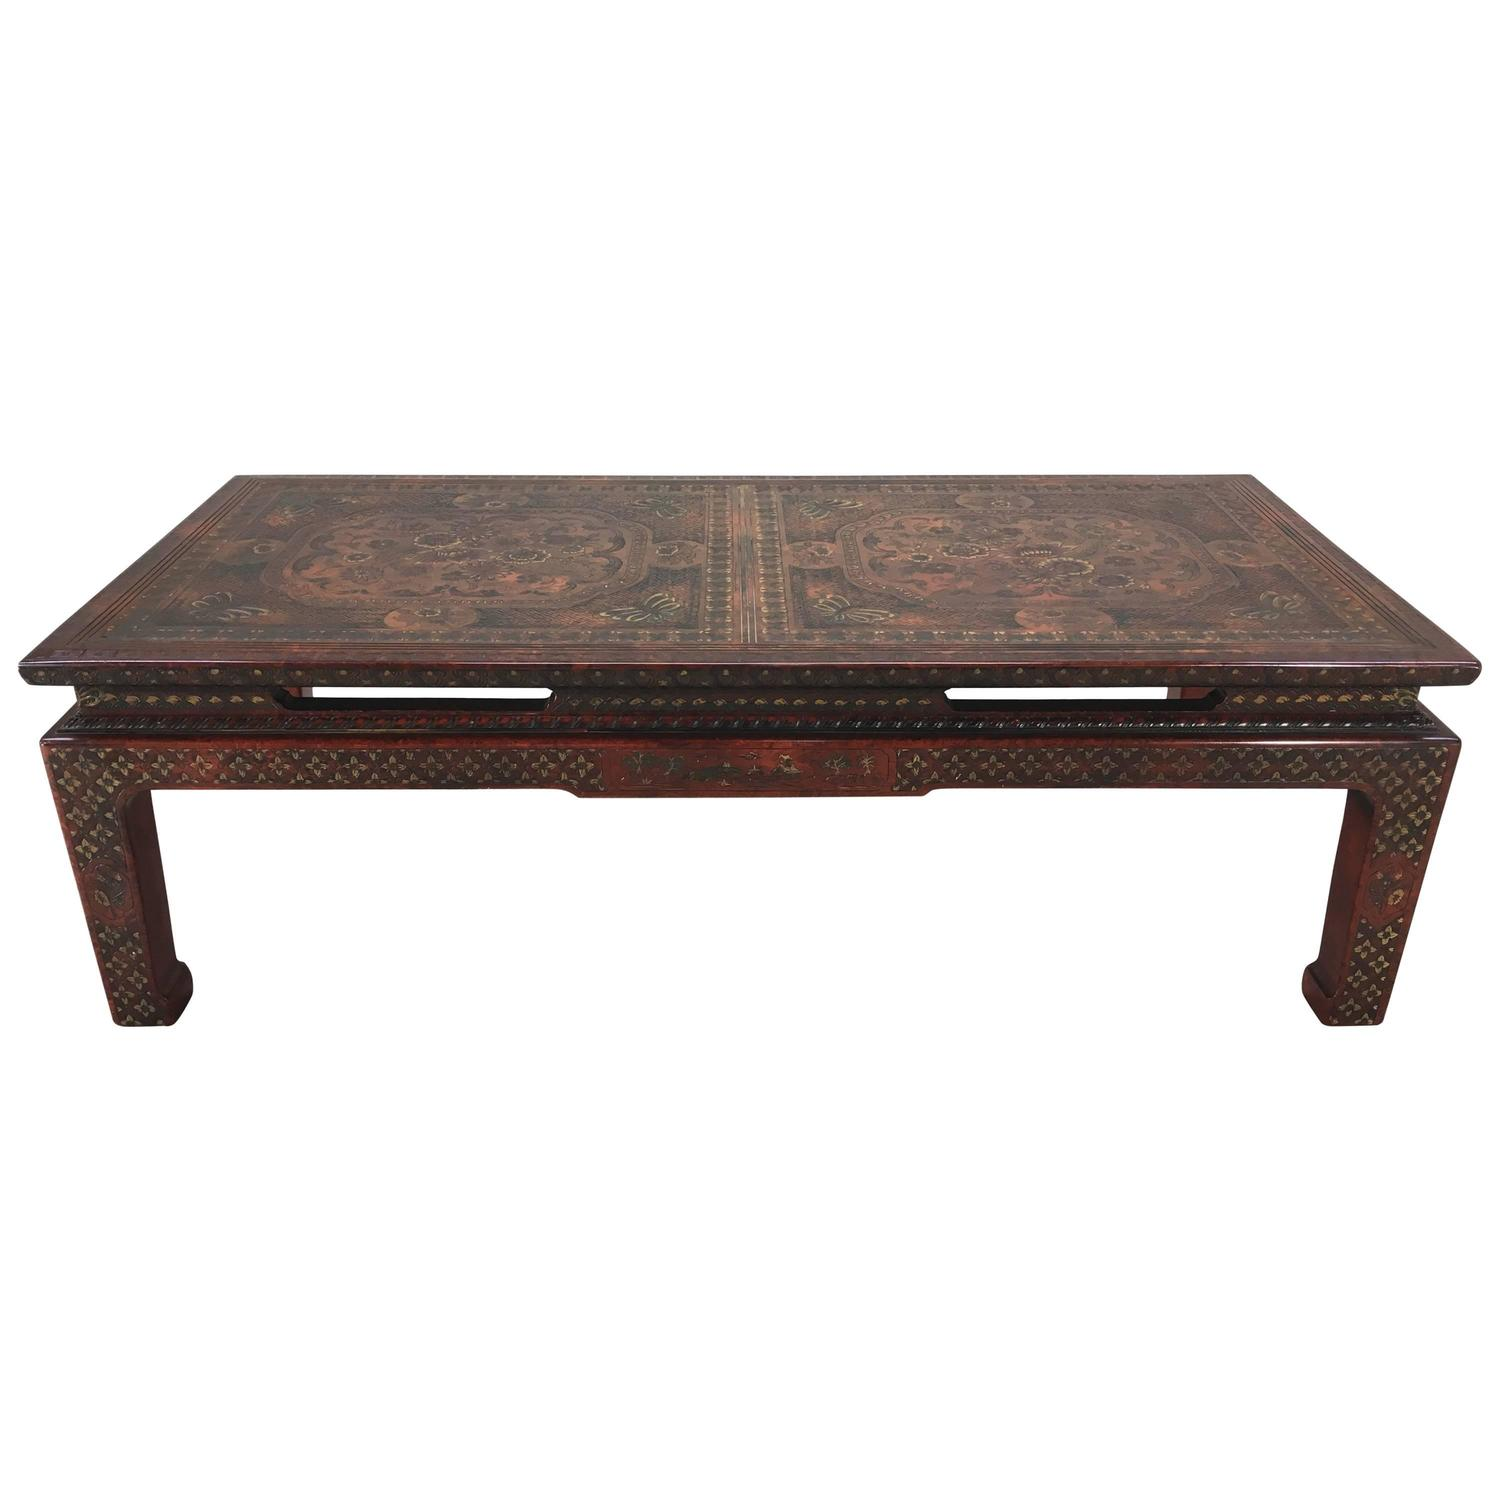 Stunning Mario Buatta for John Widdi b Chinoiserie Coffee Table